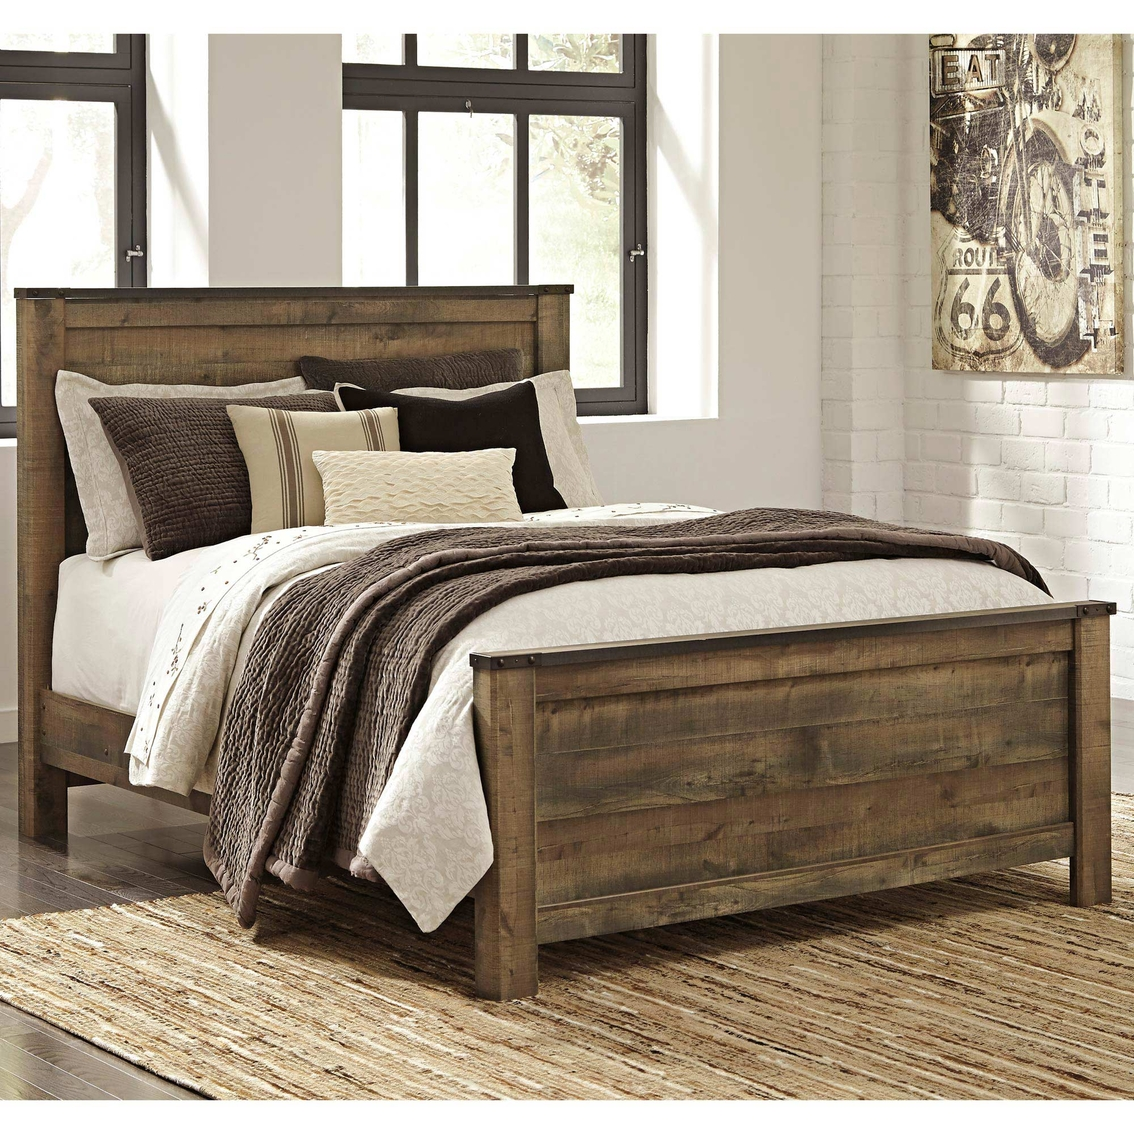 Ashley Trinell Queen Panel Bed Beds Home Amp Appliances Shop The Exchange